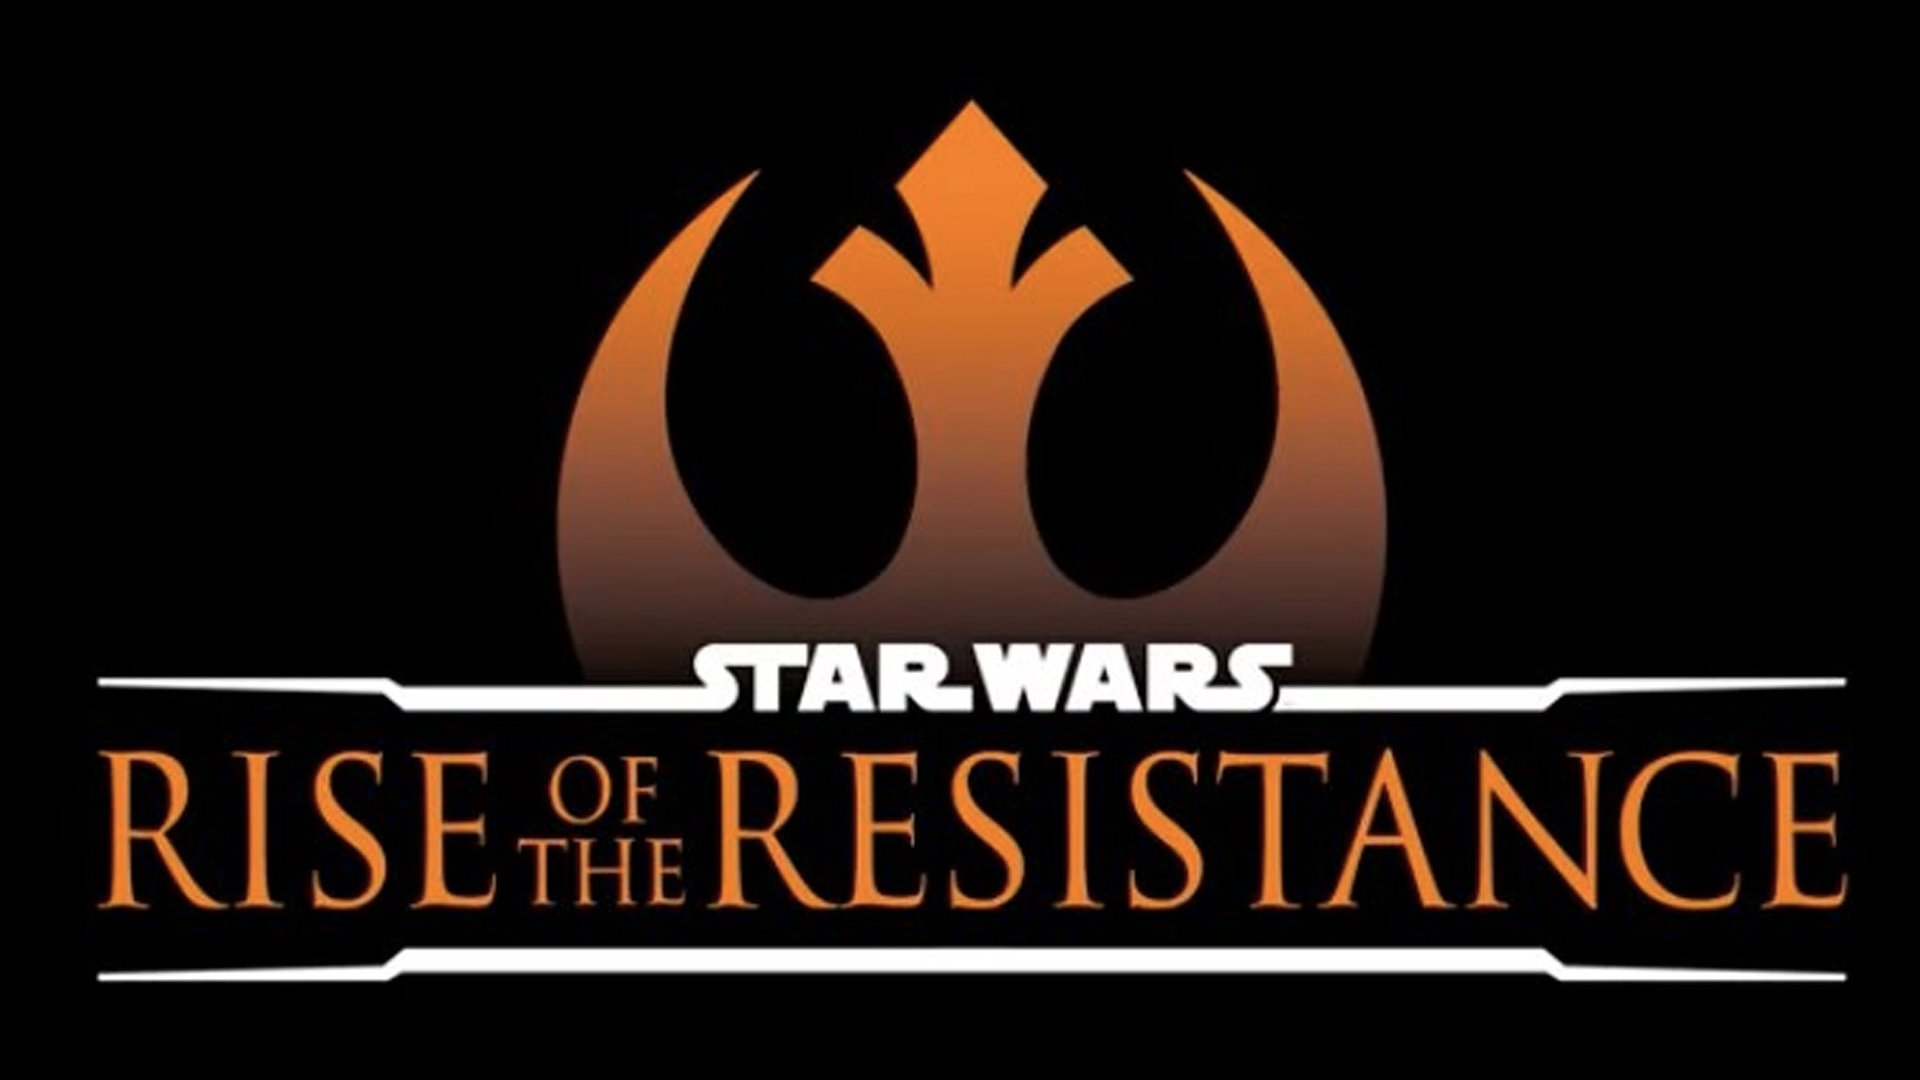 Star Wars Rise Of The Resistance Opens Coasterforce